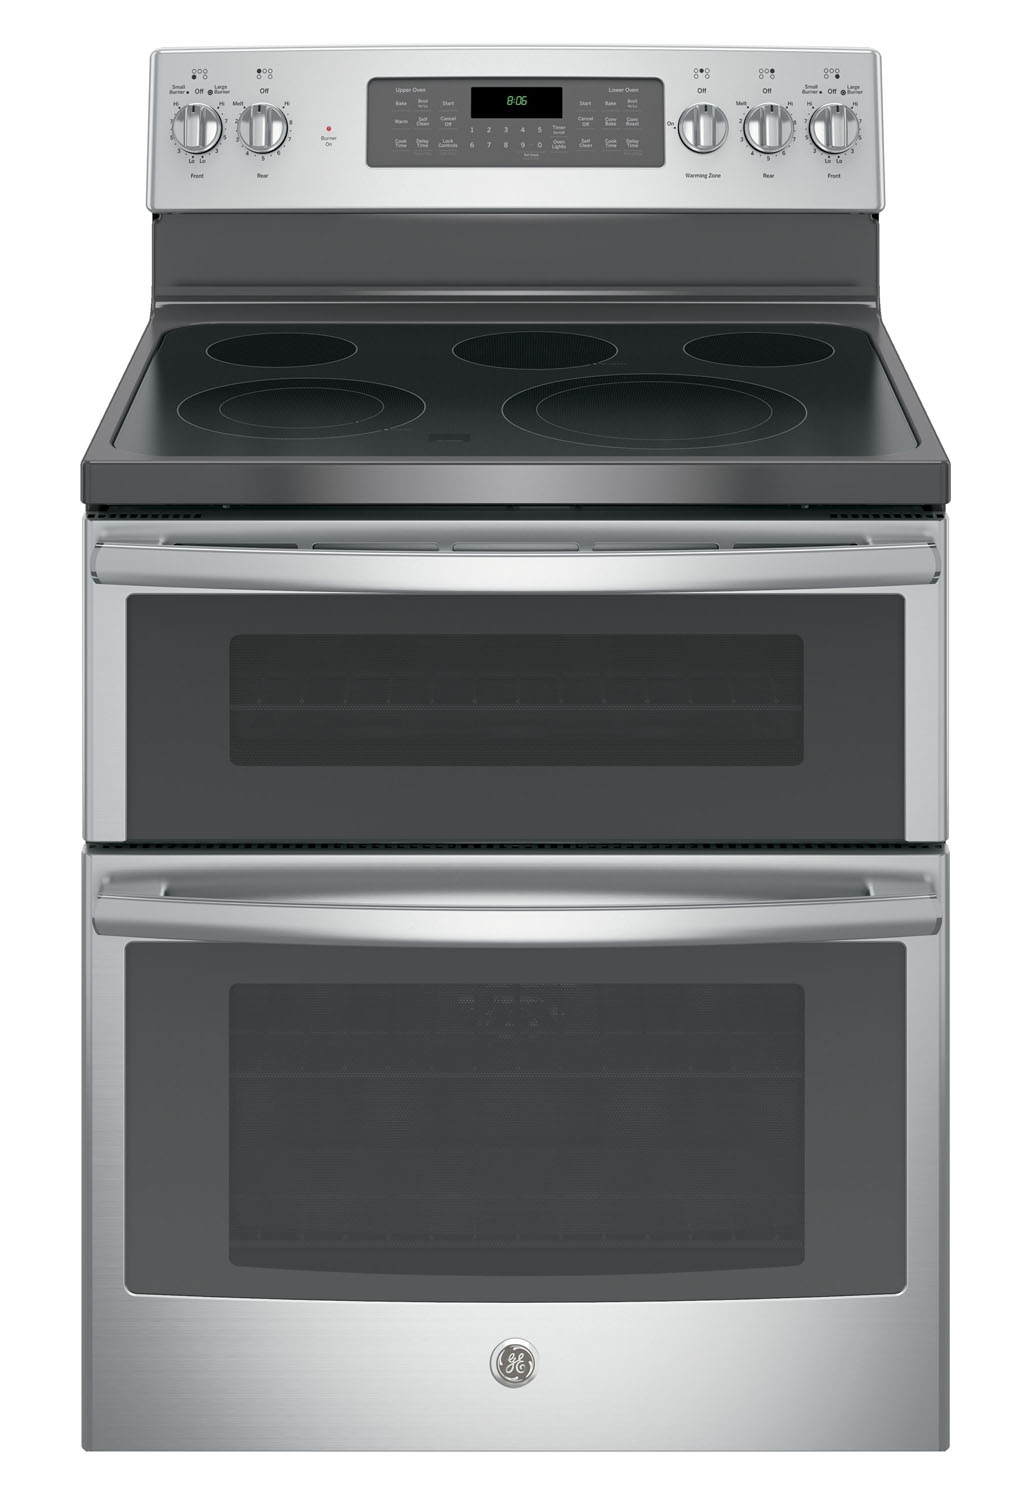 steel free standing electric double oven convection range jb860sjss